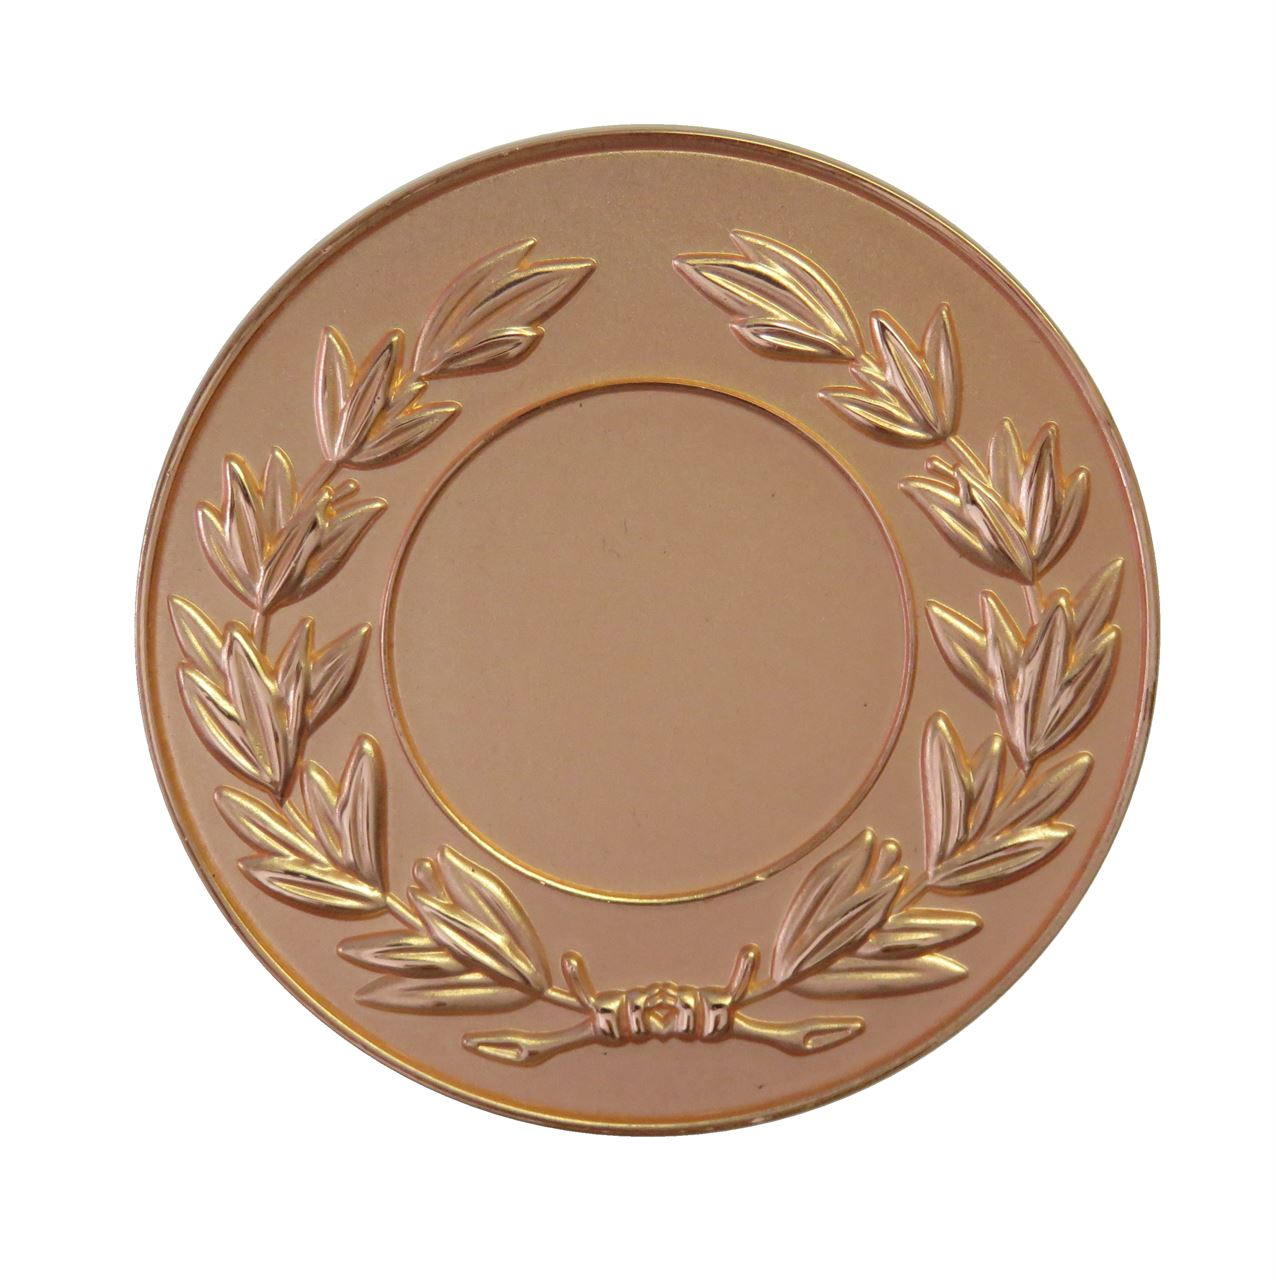 Copper Frosted Laurel Medal (size: 50mm) - LAUF